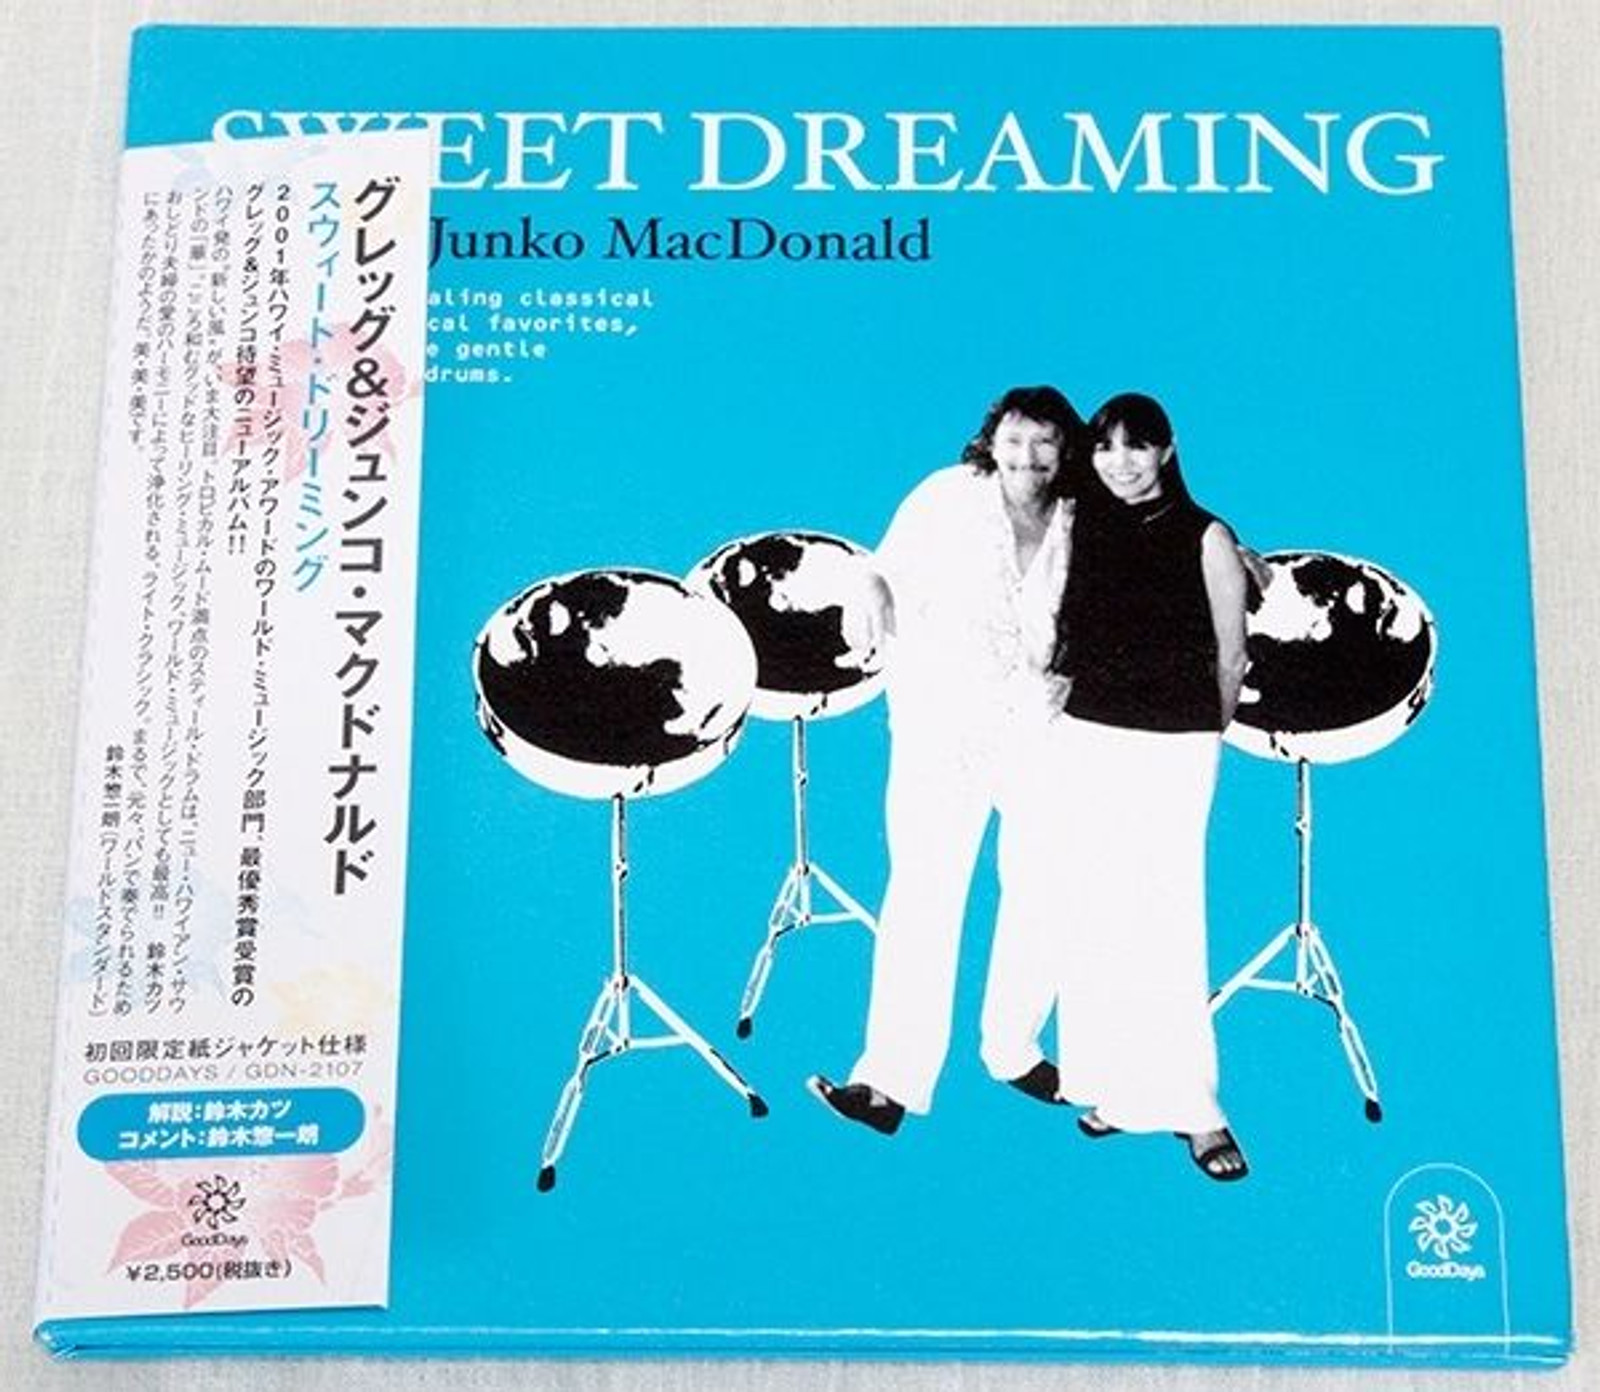 SWEET DREAMING Greg & Junko MacDonald Japan Mini-LP CD GDN-2107